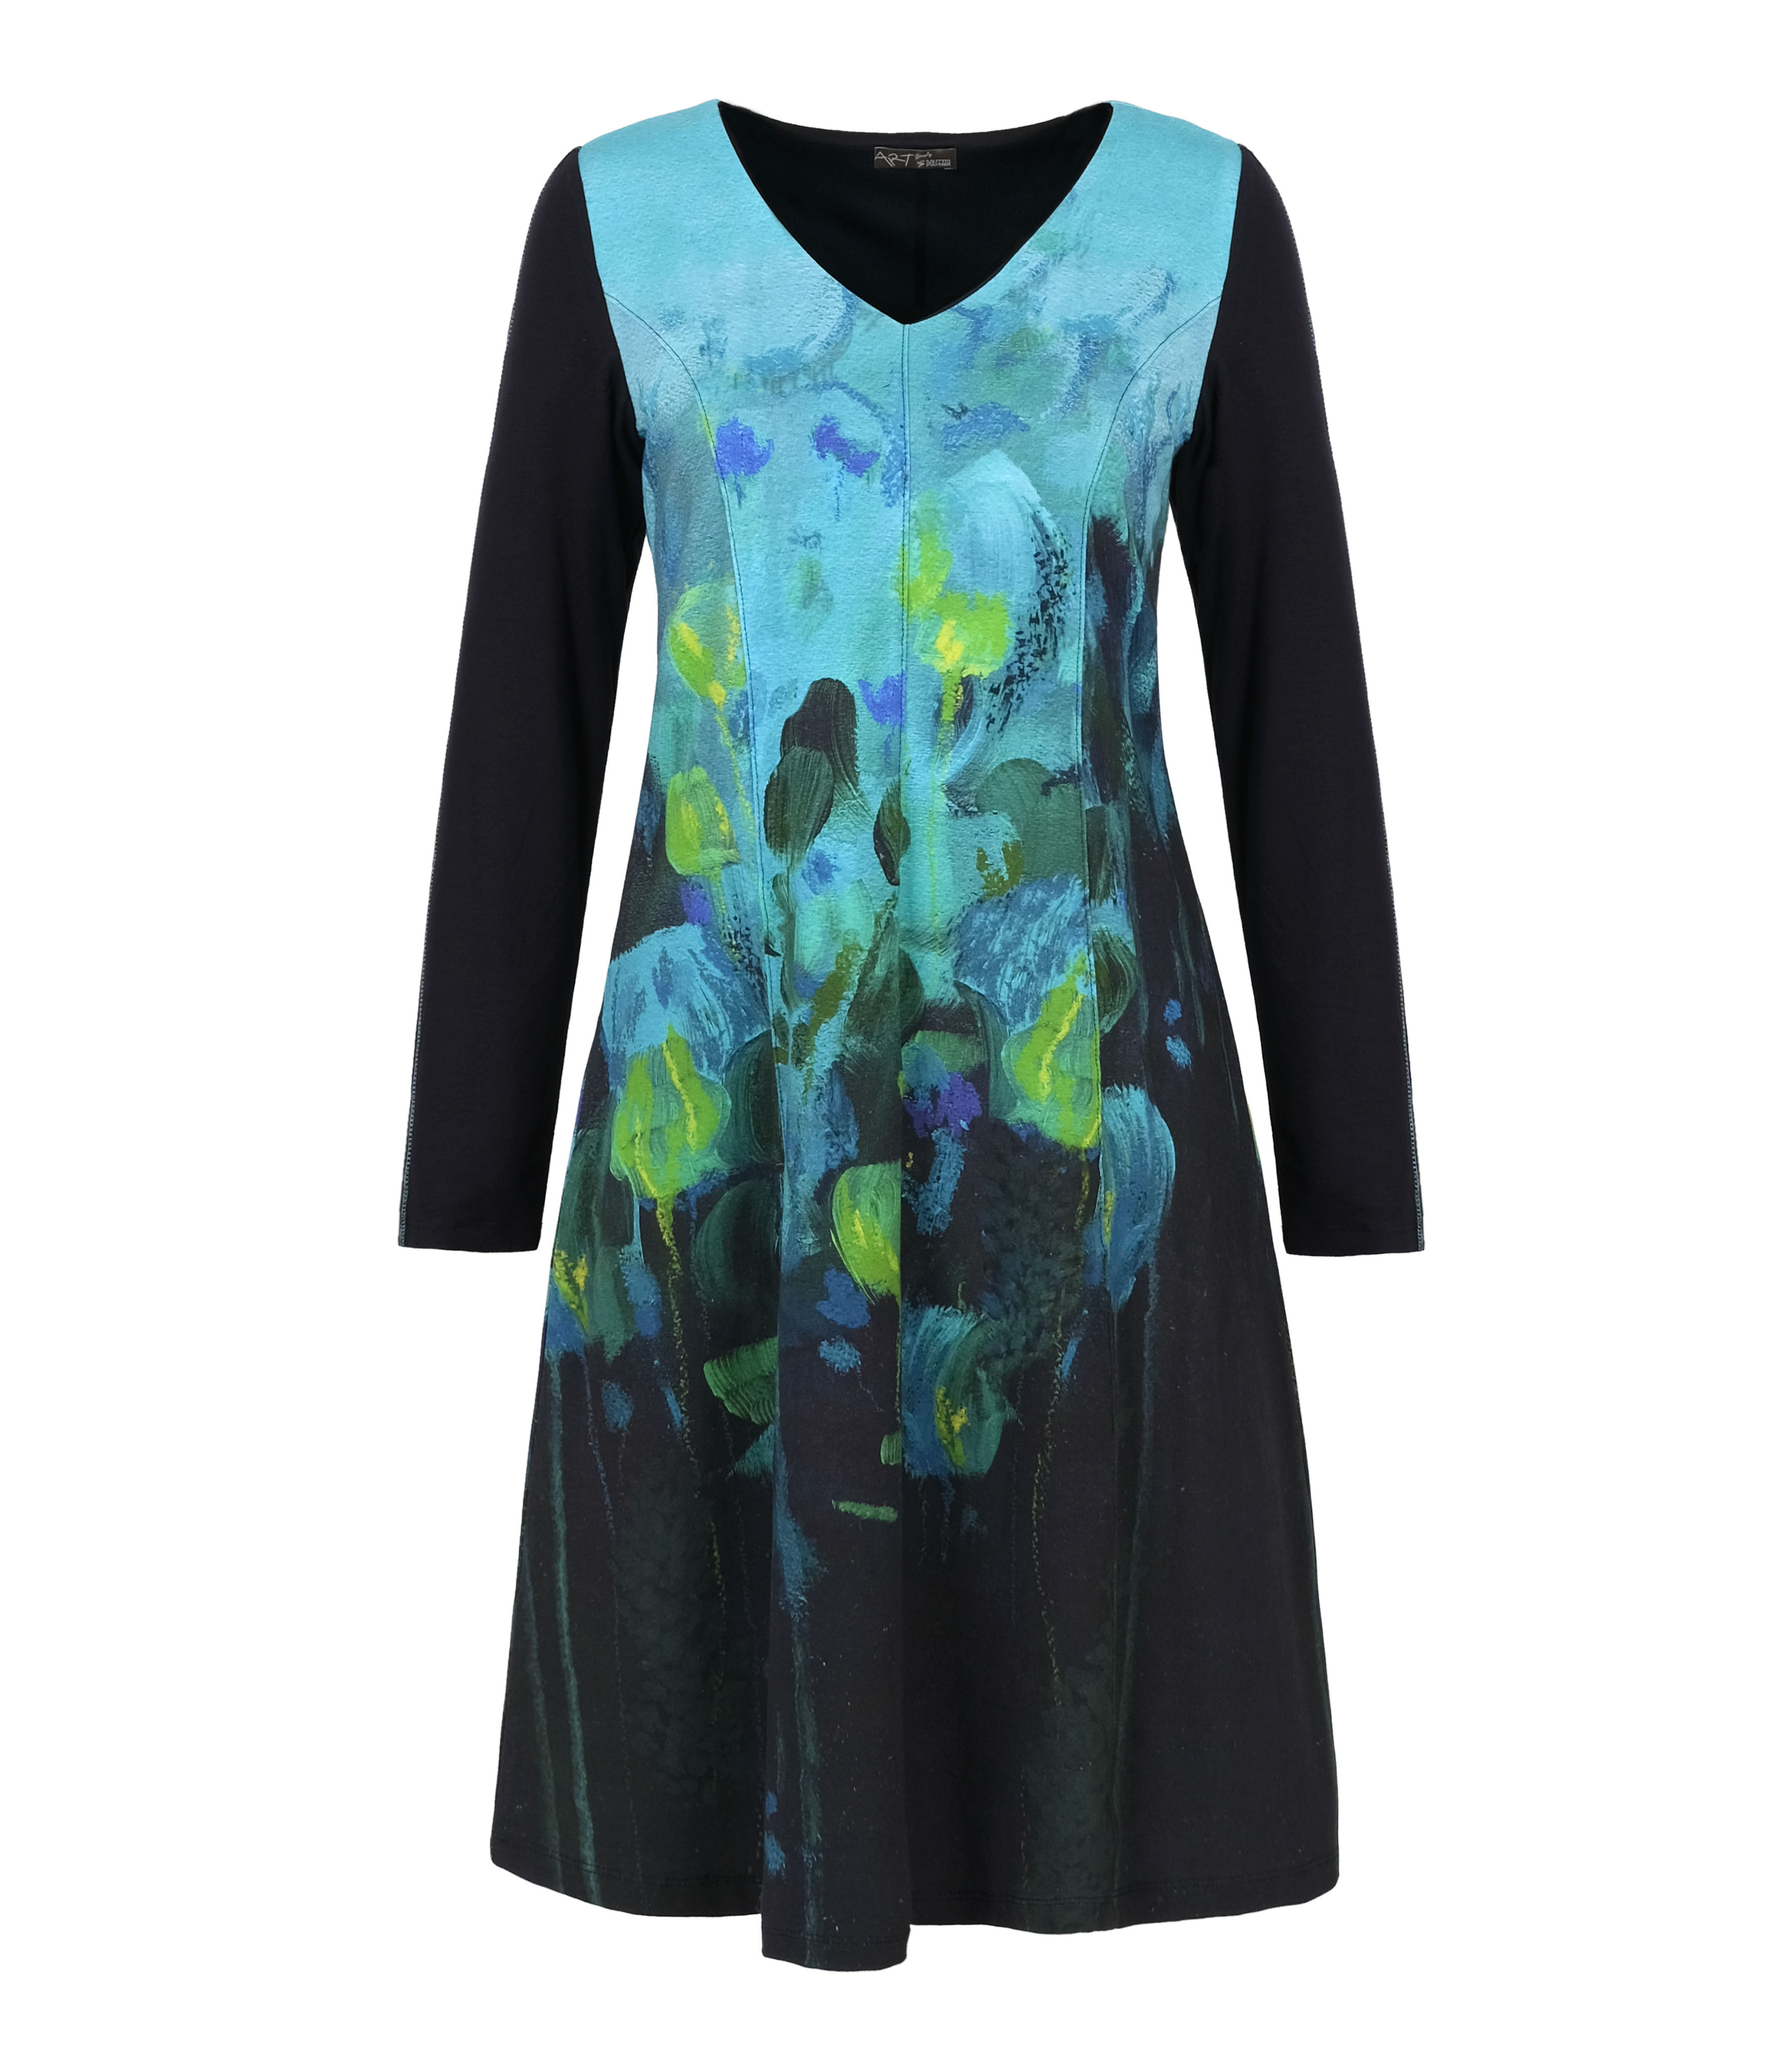 Simply Art Dolcezza: Fantaisie Floralge Abstract Art Flare Dress (1 Available at Special Price!) Dolcezza_SimplyArt_70635